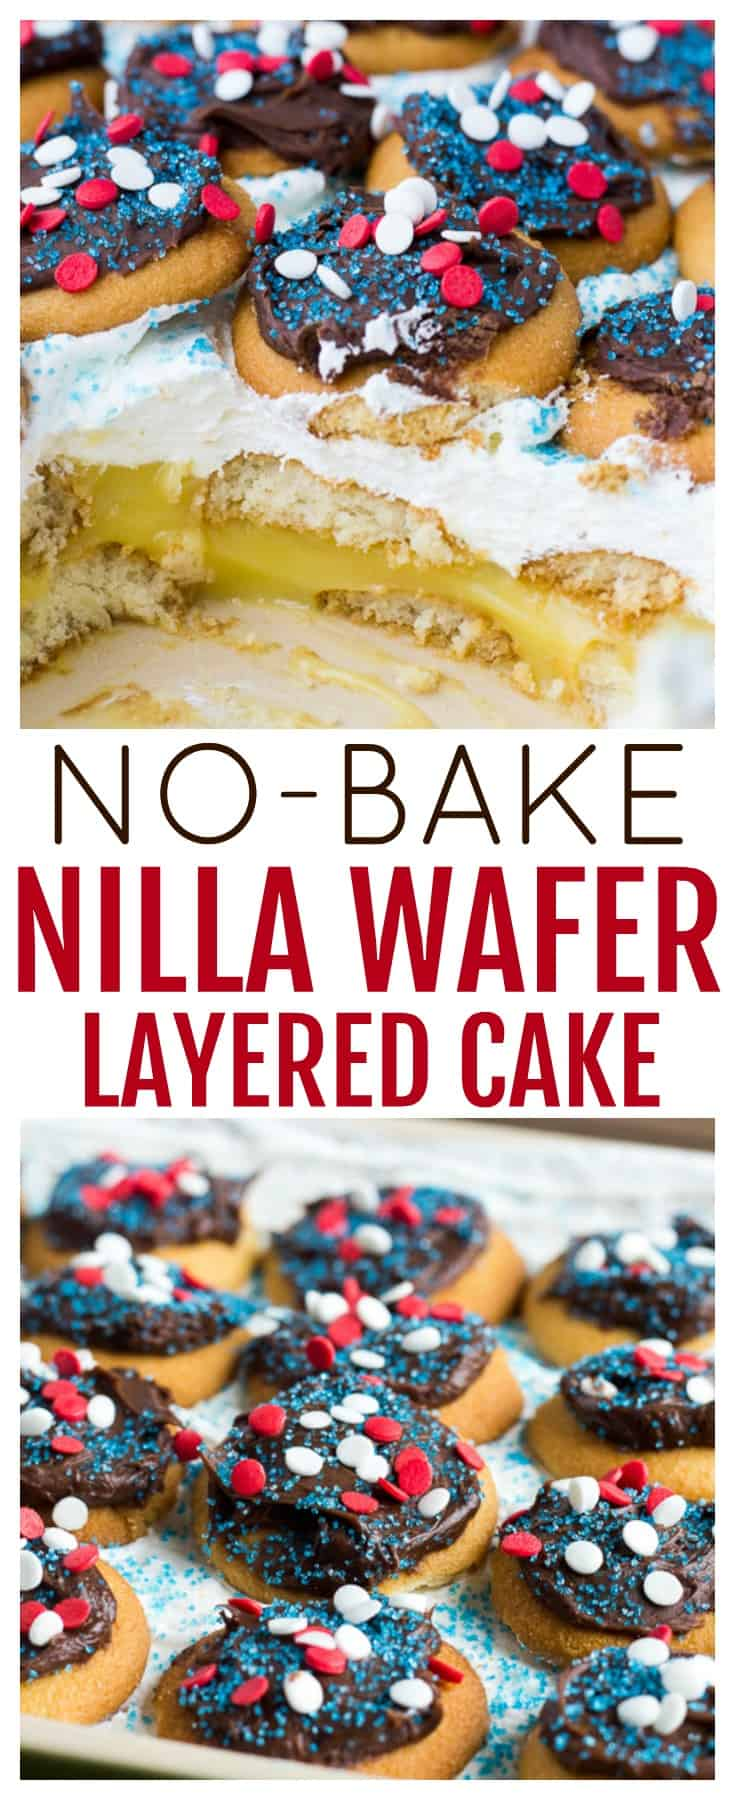 This No-Bake Layered NILLA Wafer Cake, isn't a cake by tradition standards. Make it by layering NILLA Wafer, pudding, and whipped topping, then top it with chocolate frosting! It's a perfect dessert recipe for summer! | #ad #dlbrecipes #summerdessert #nobakedessert #IC #NILLASummerParty